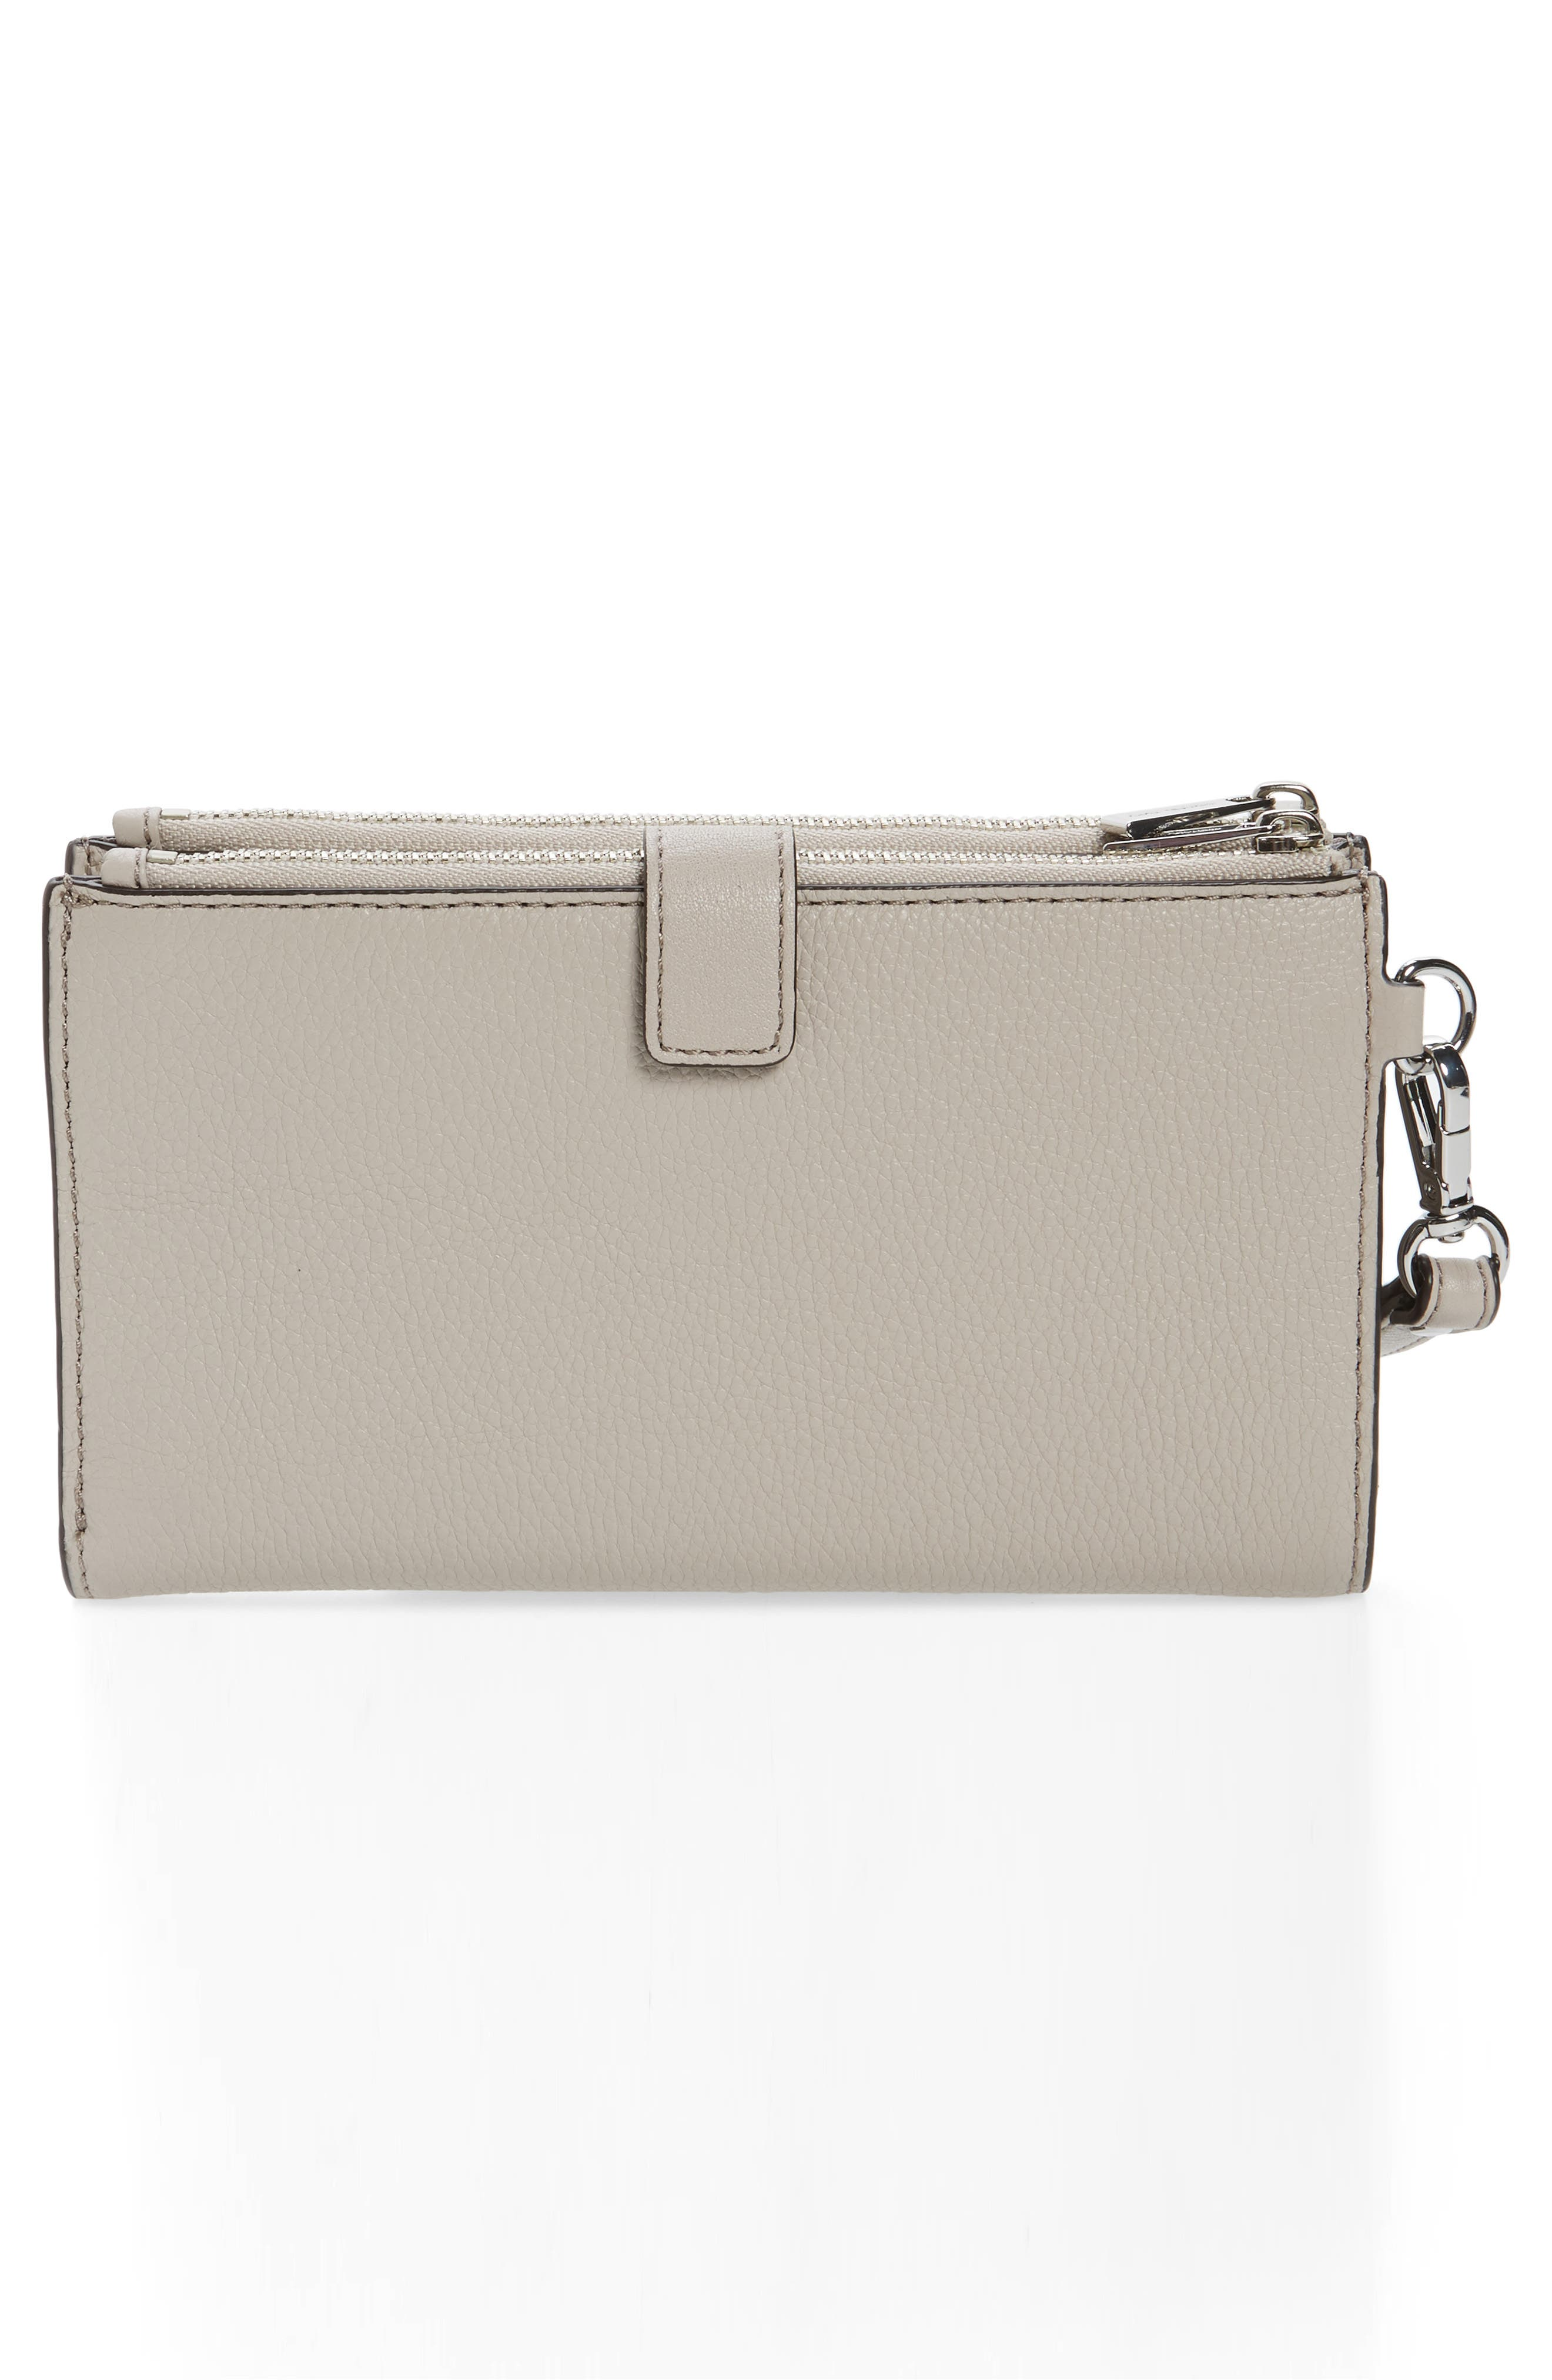 Adele Leather Wristlet,                             Alternate thumbnail 28, color,